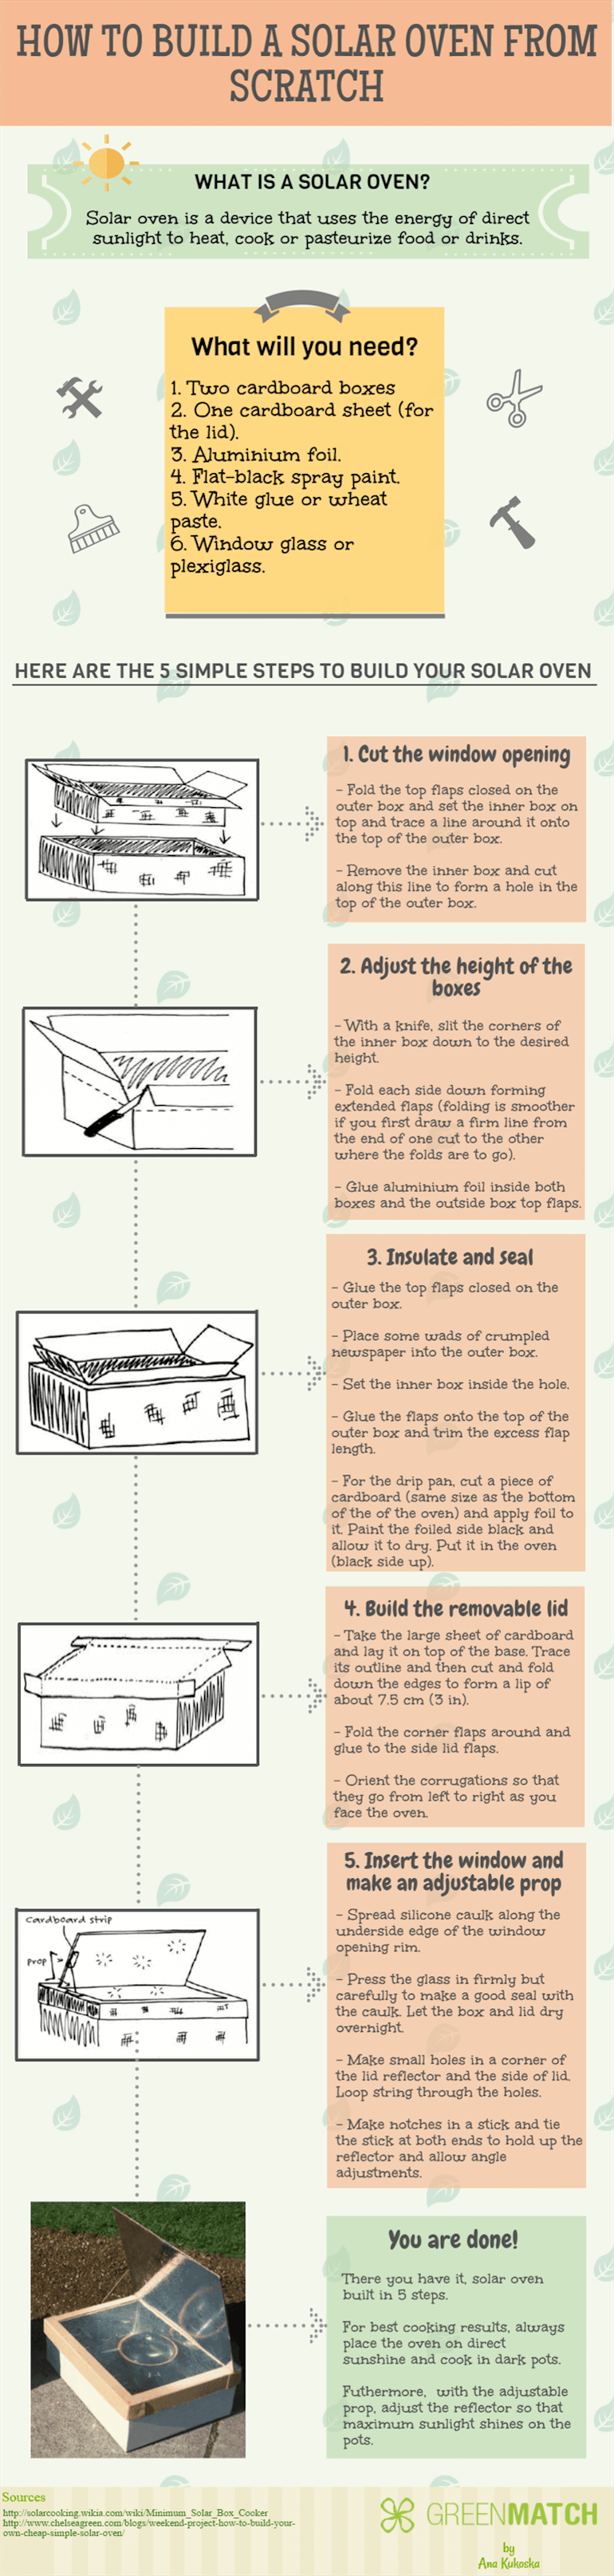 Infographic about building a solar oven from scratch